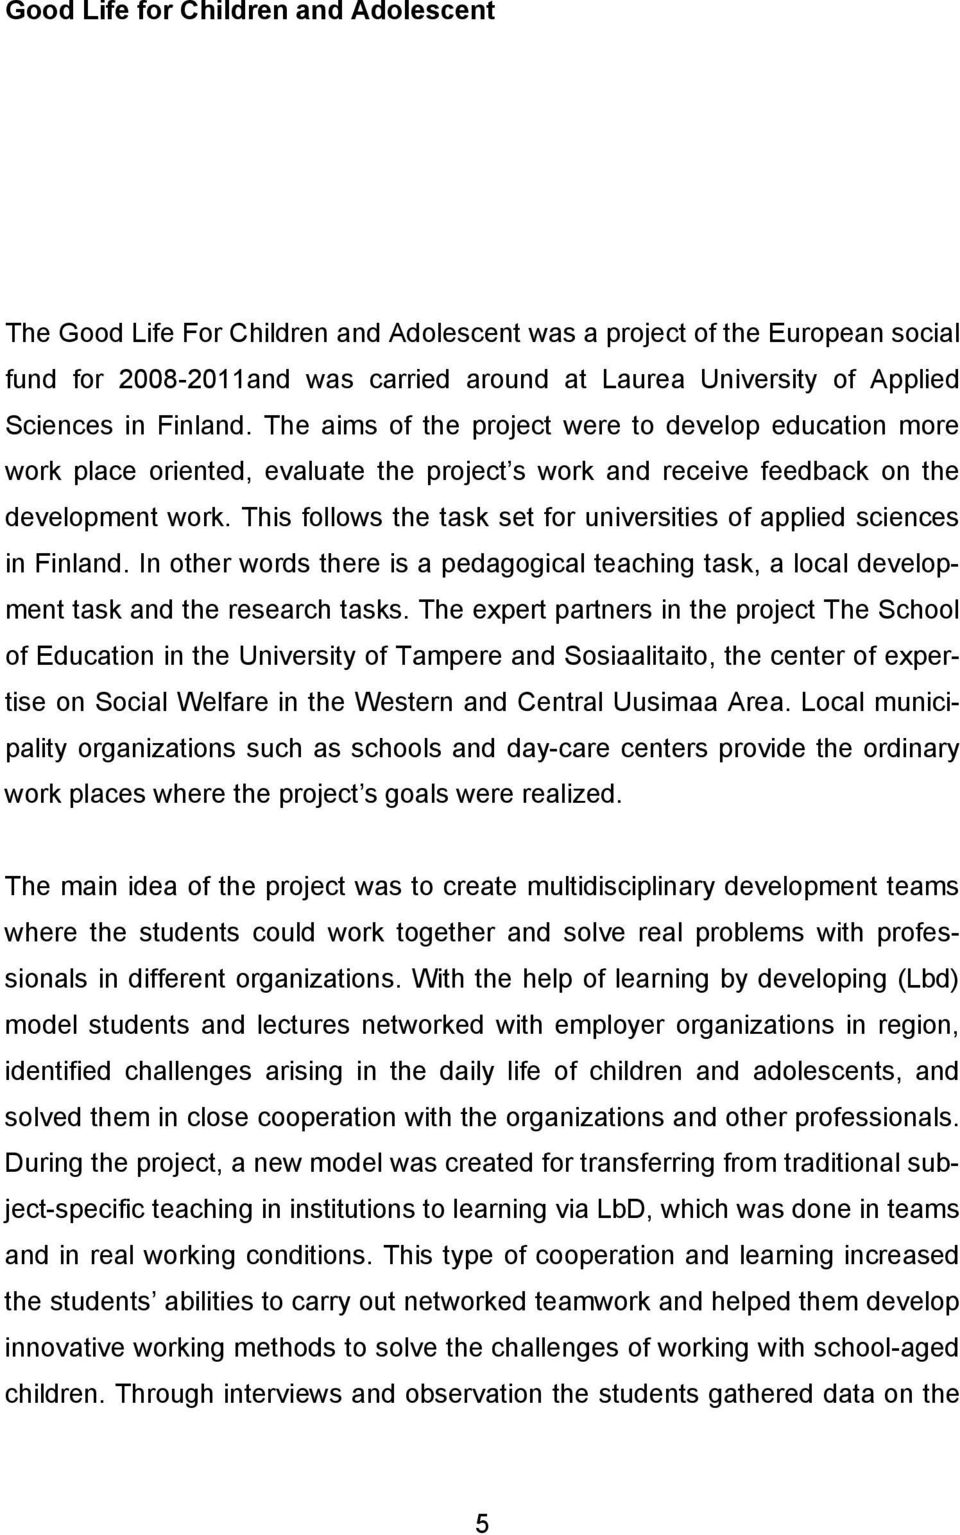 This follows the task set for universities of applied sciences in Finland. In other words there is a pedagogical teaching task, a local development task and the research tasks.